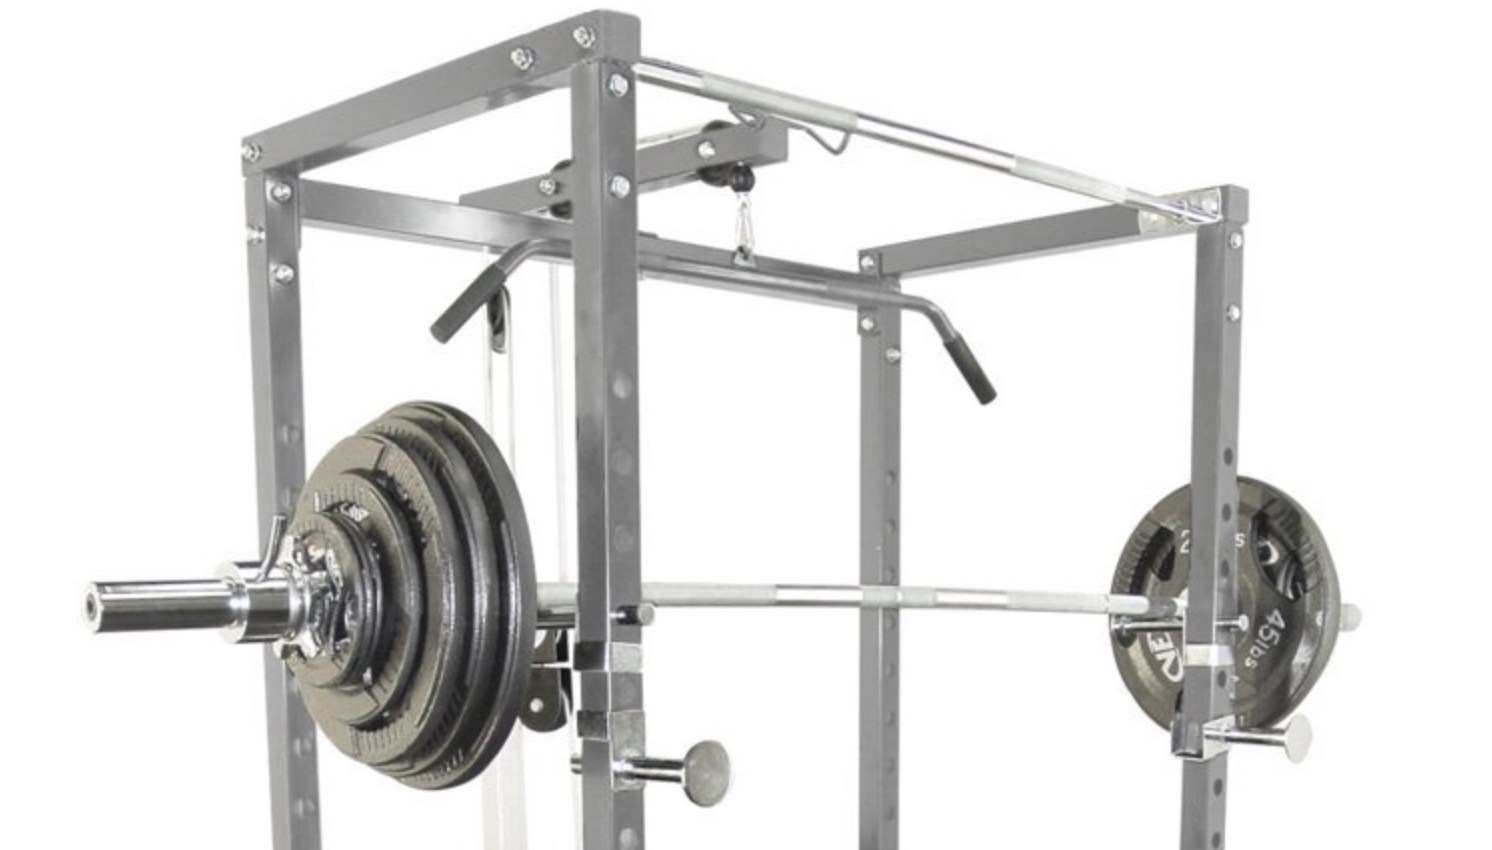 Valor Bd 7 Power Rack With Lat Pull Attachment Review